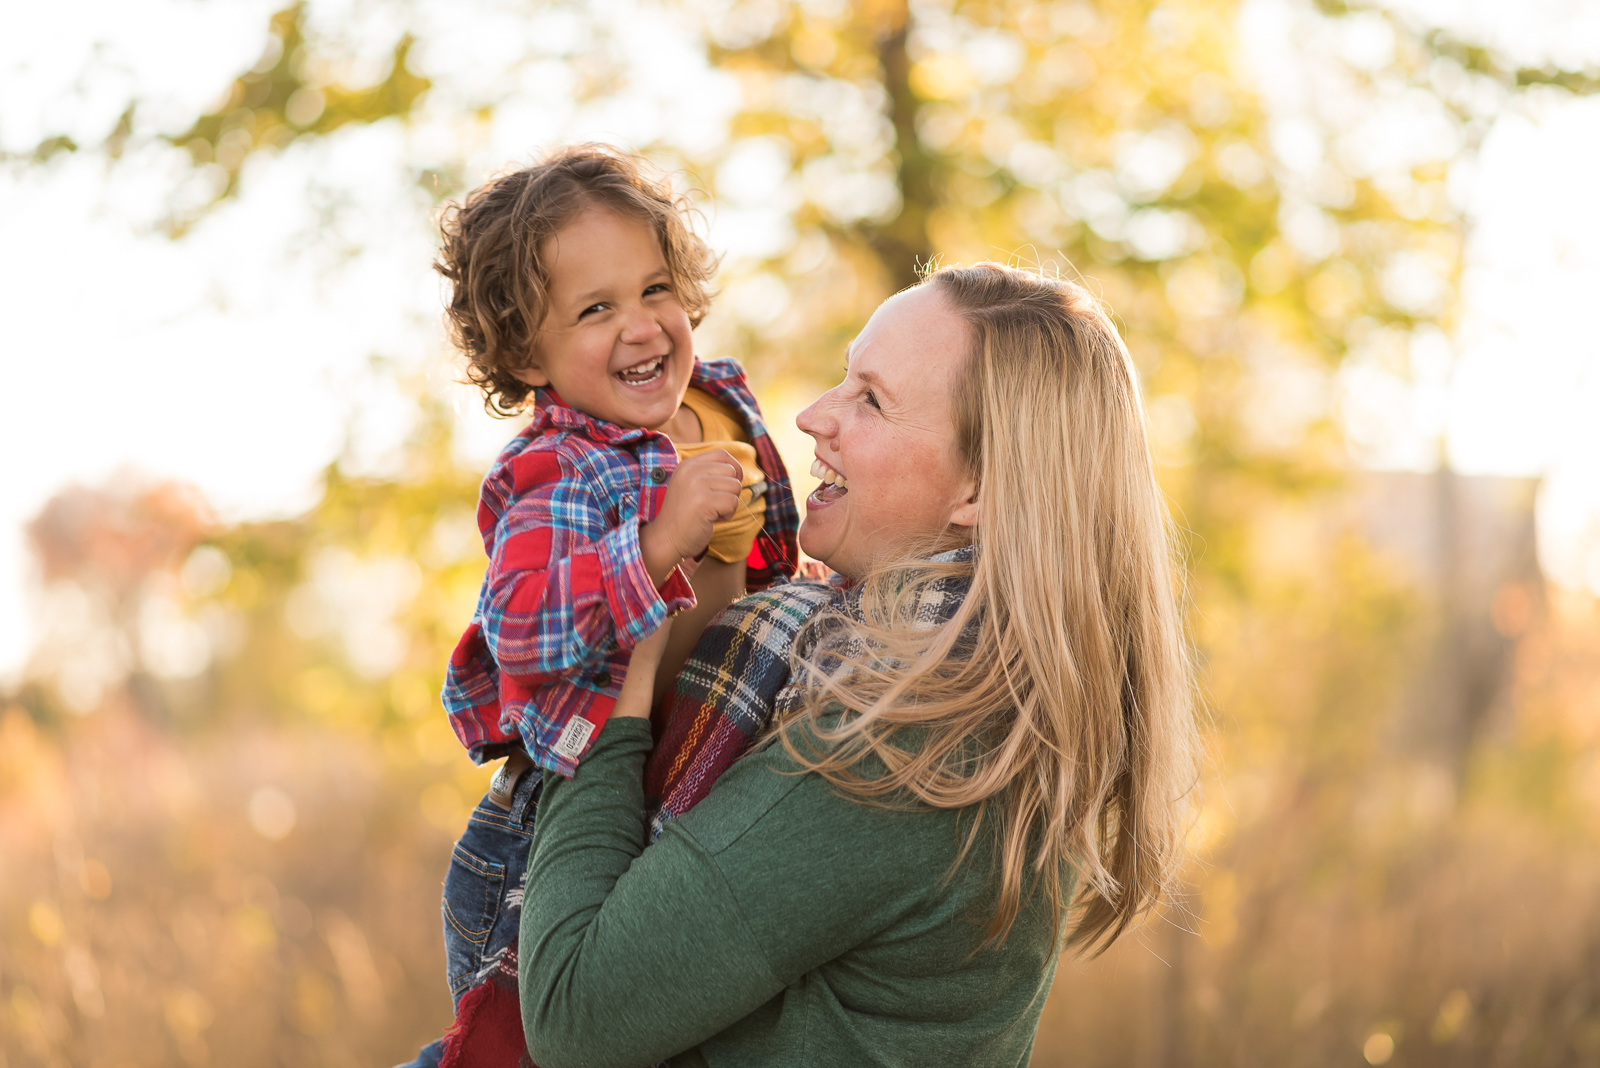 Chicago Outdoor Family Portrait Session  (2 of 5).jpg